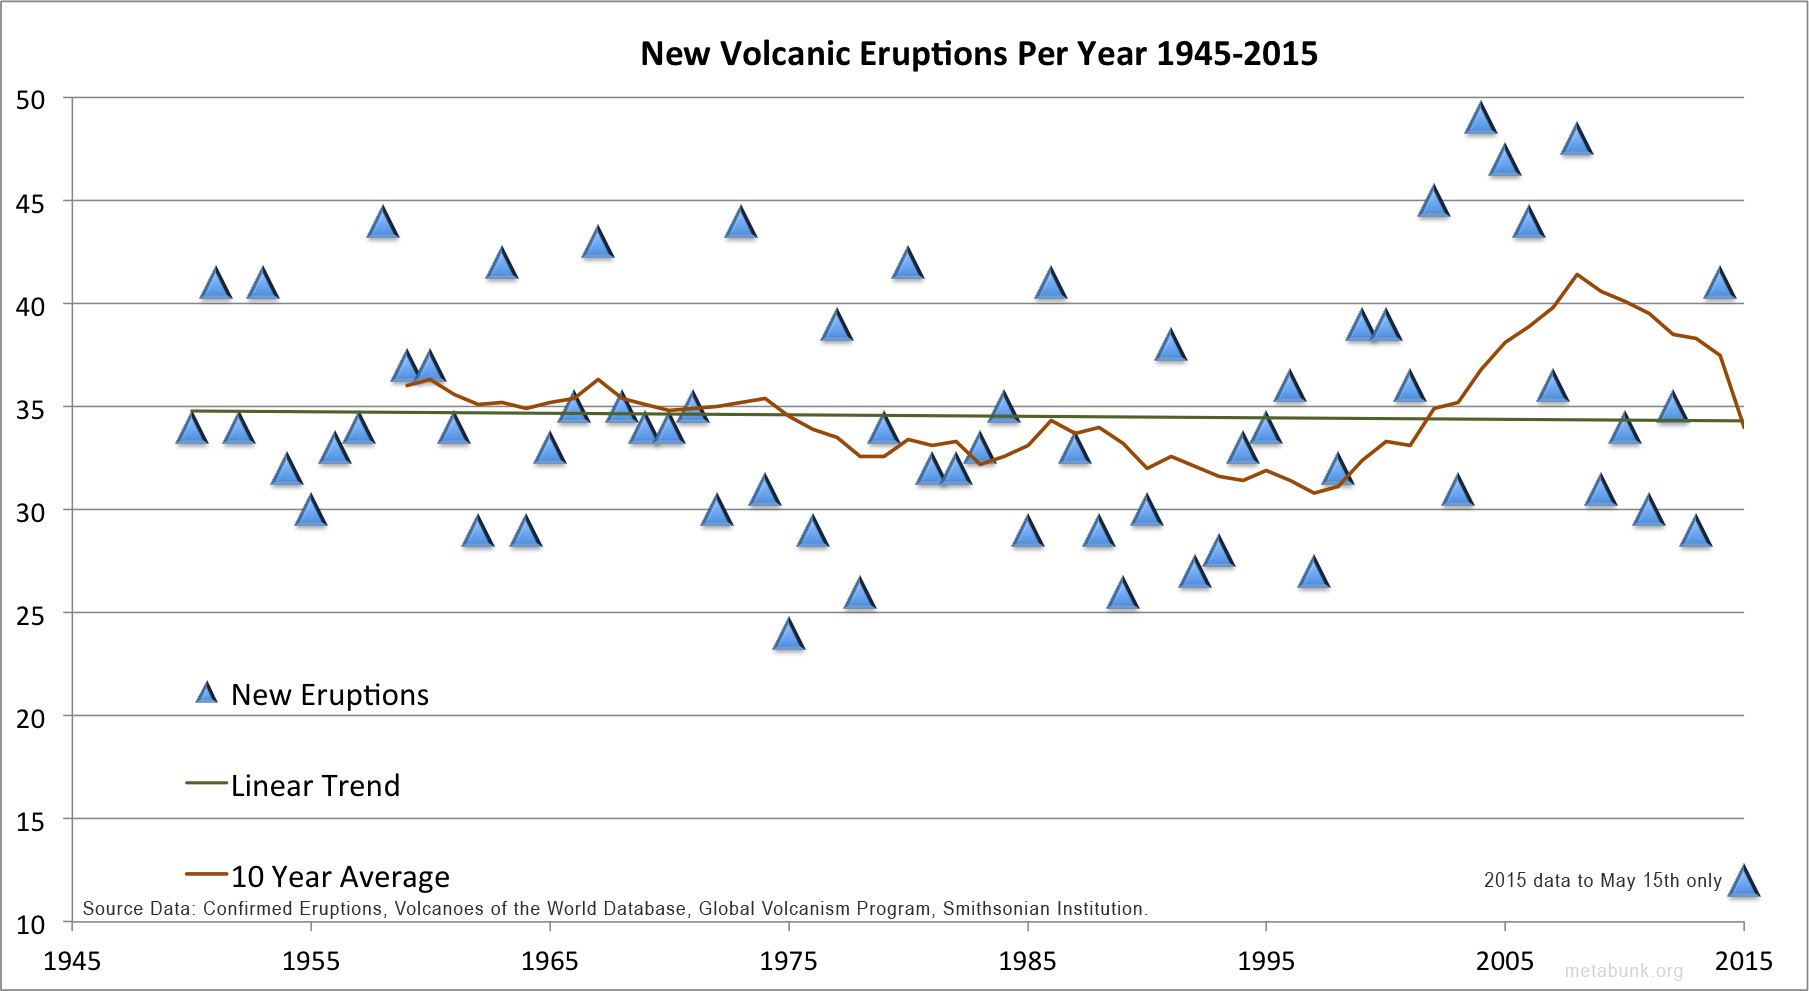 Significant increase in new volcano eruptions in 2016